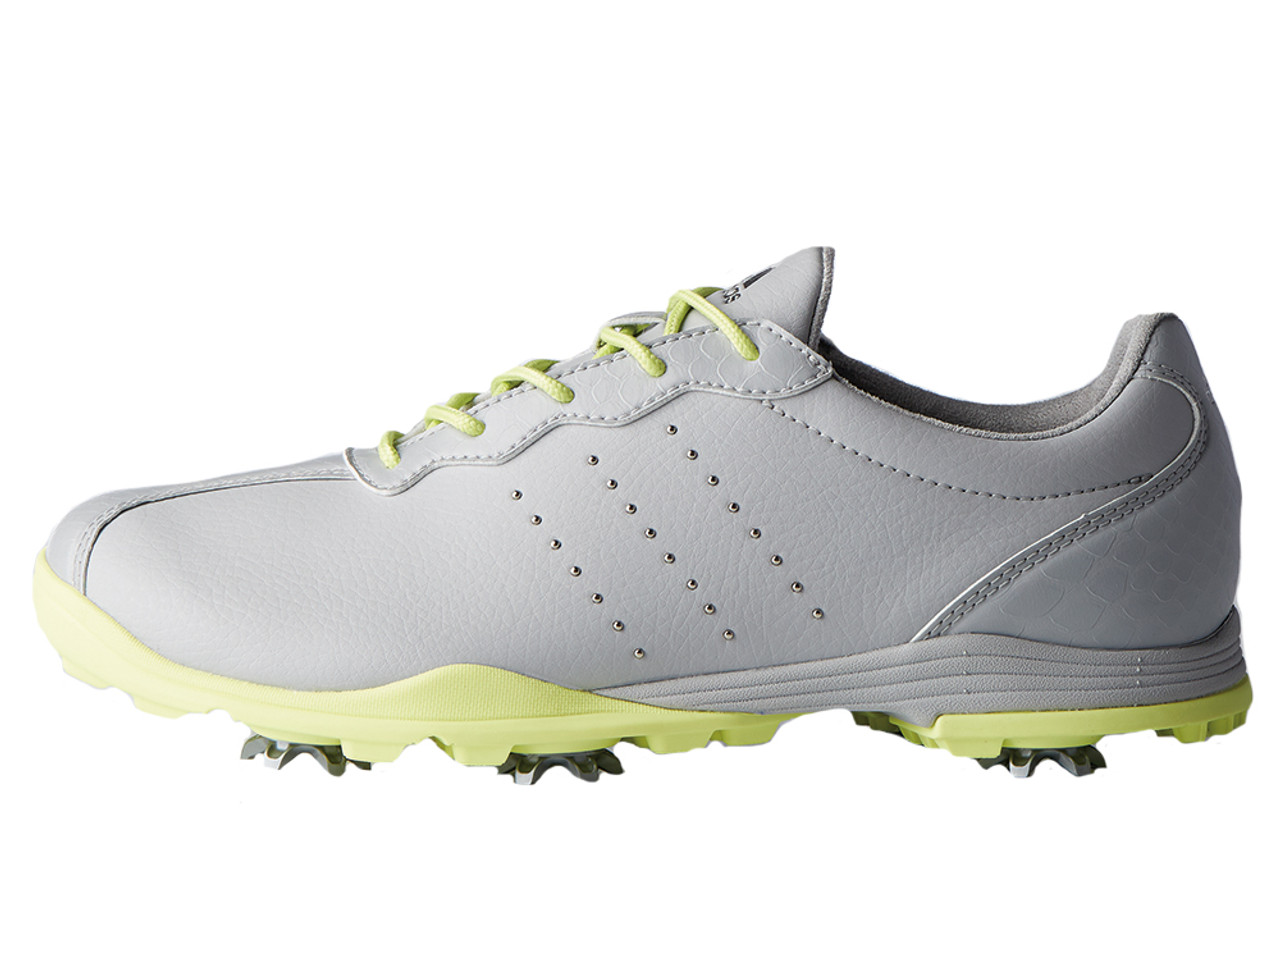 new styles fbd5f f59ba Adidas W Adipure DC Golf Shoes - Grey OneFrozen Yellow